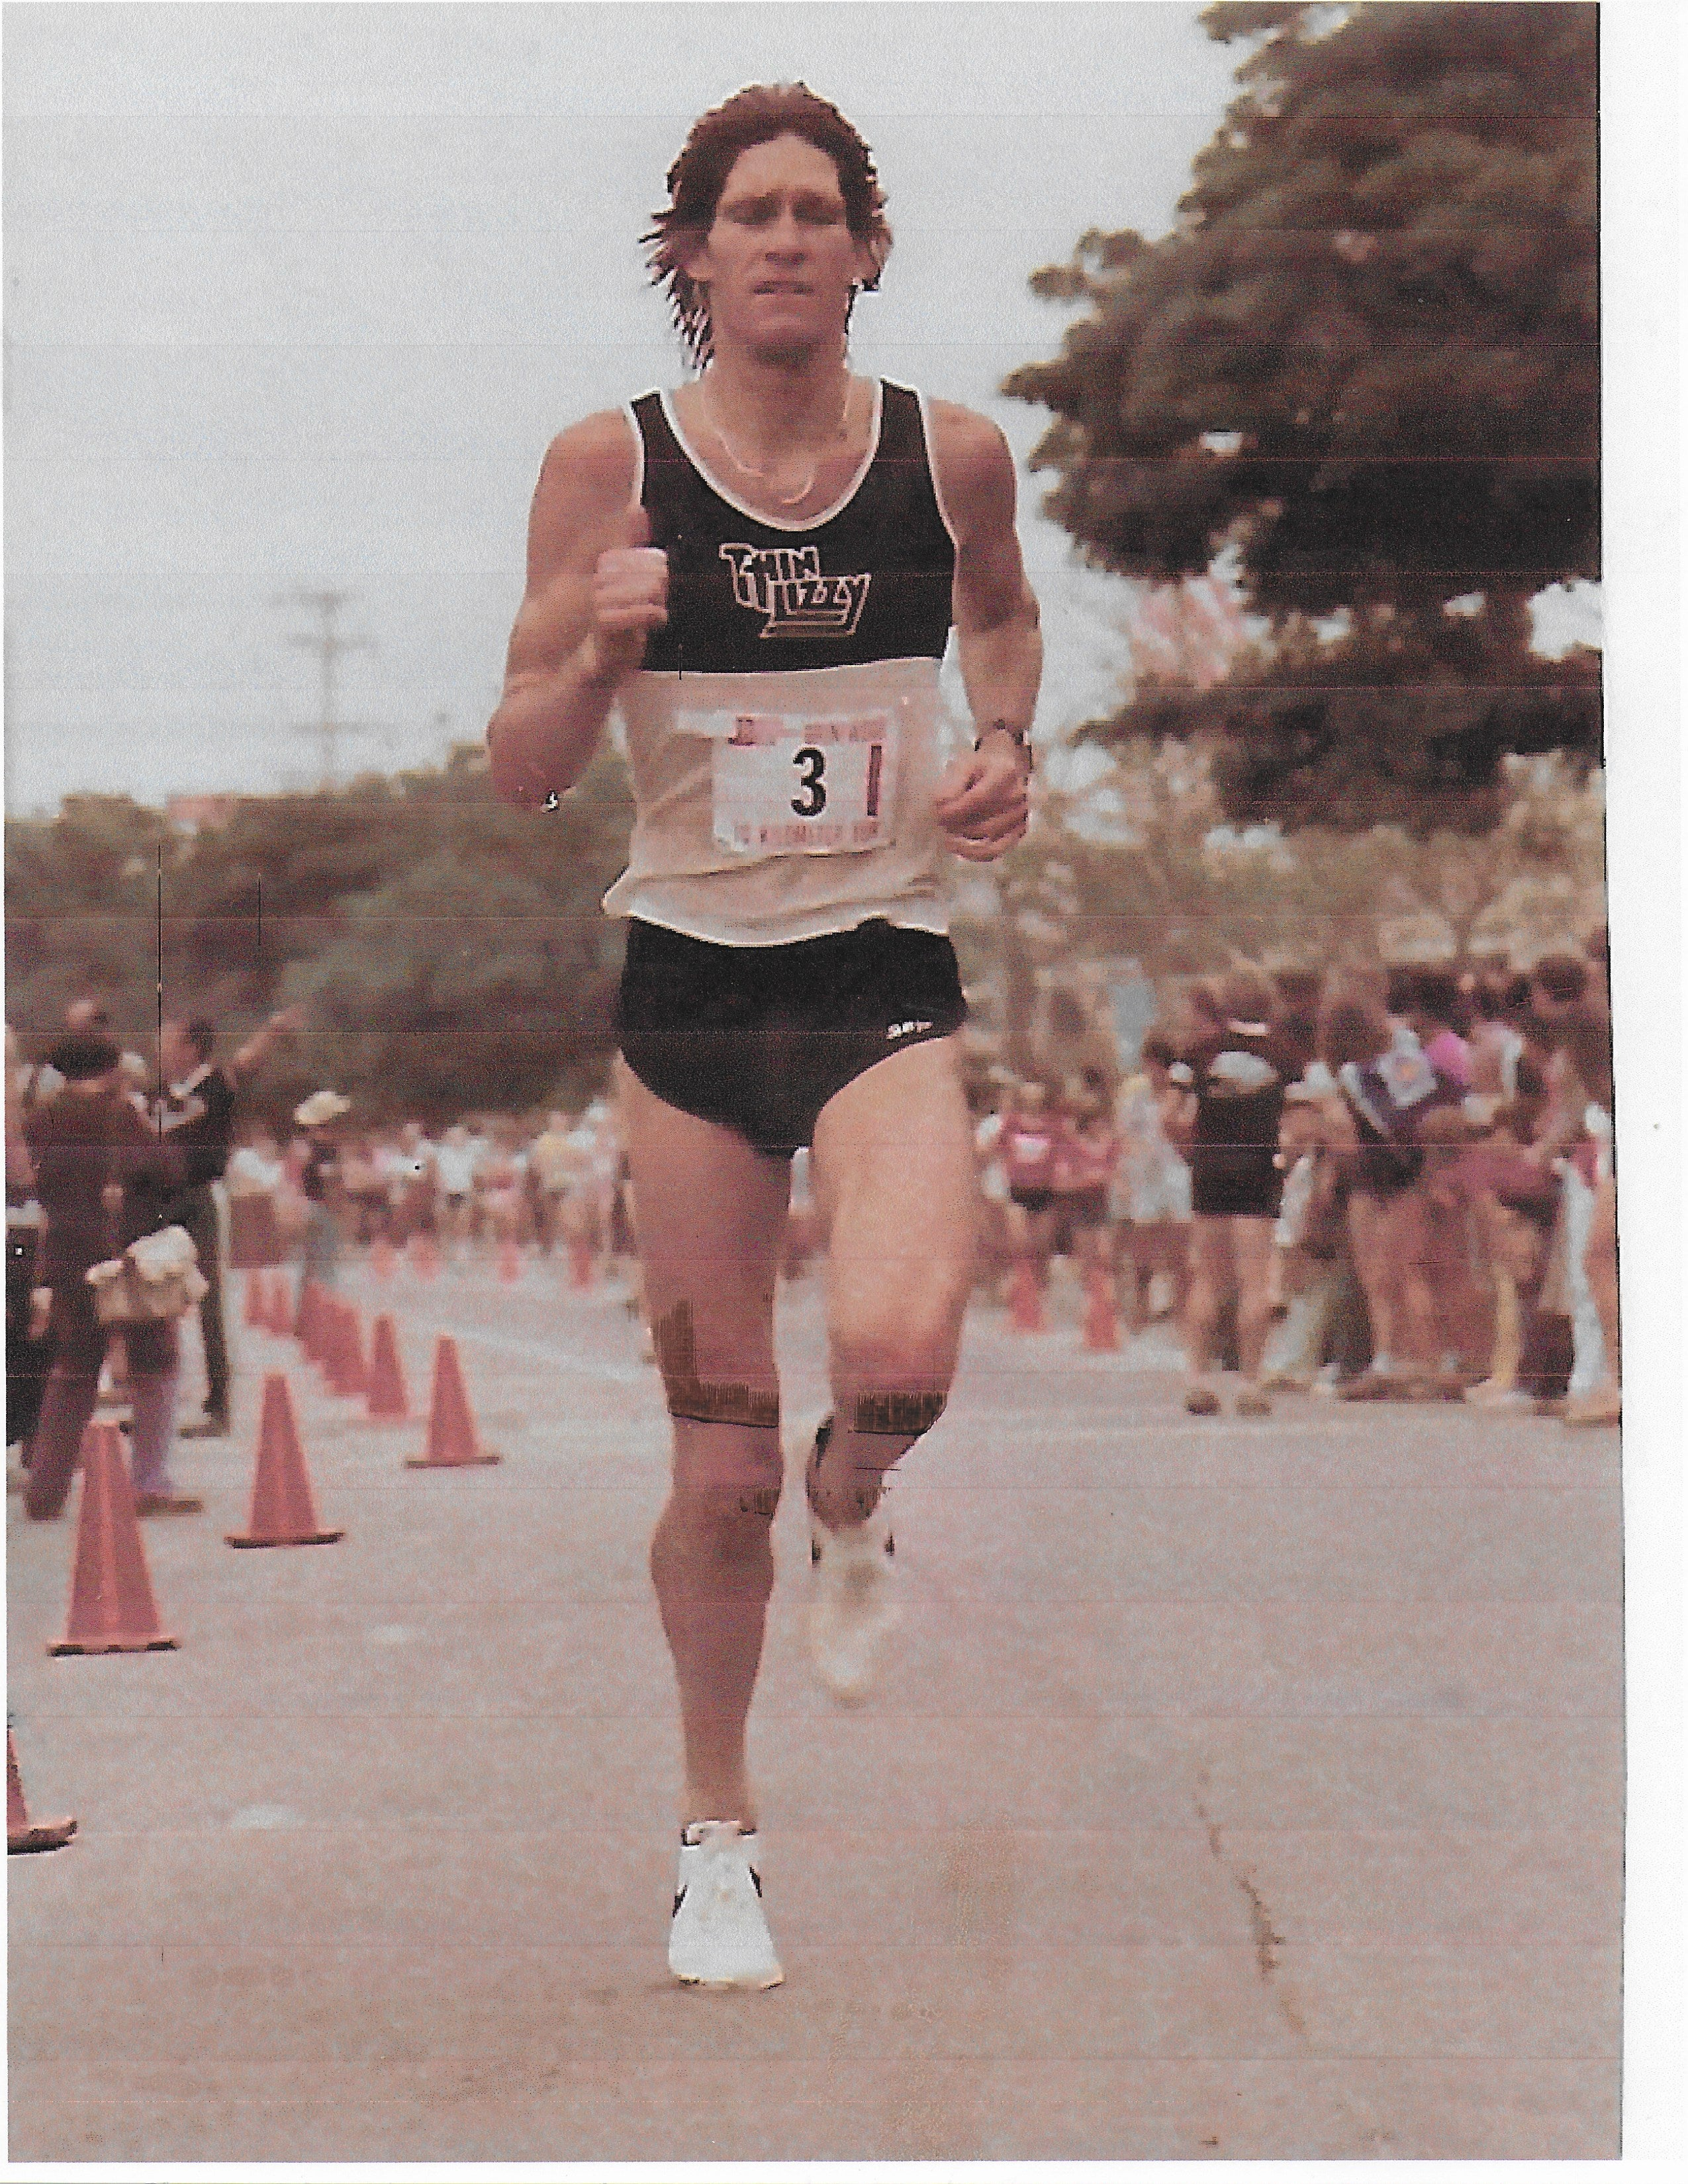 Jon Sutherland as a young runner